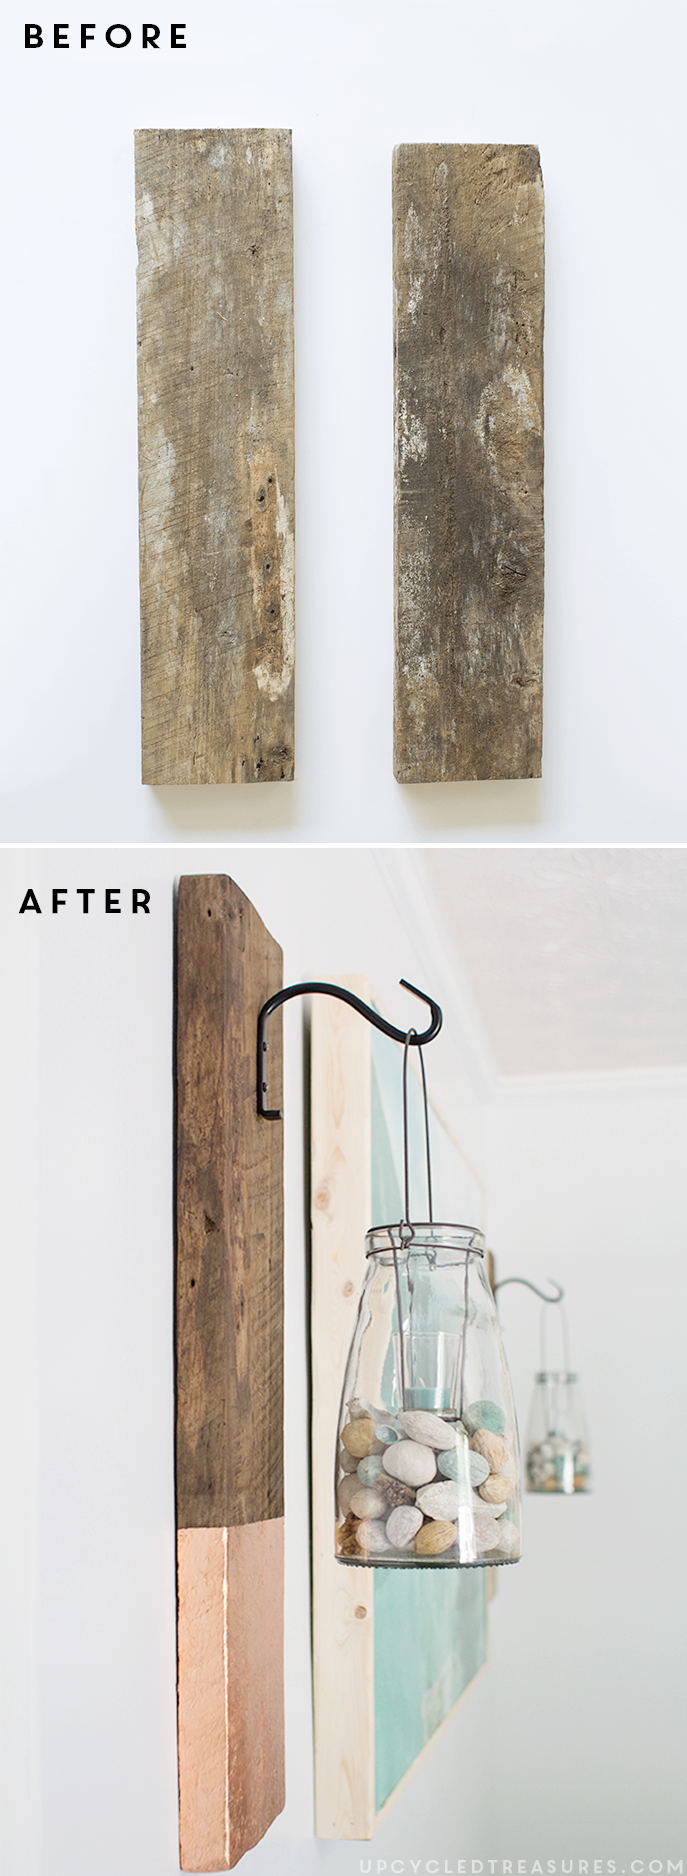 How to Create Modern Rustic Wall Hangings   upcycledtreasures.com